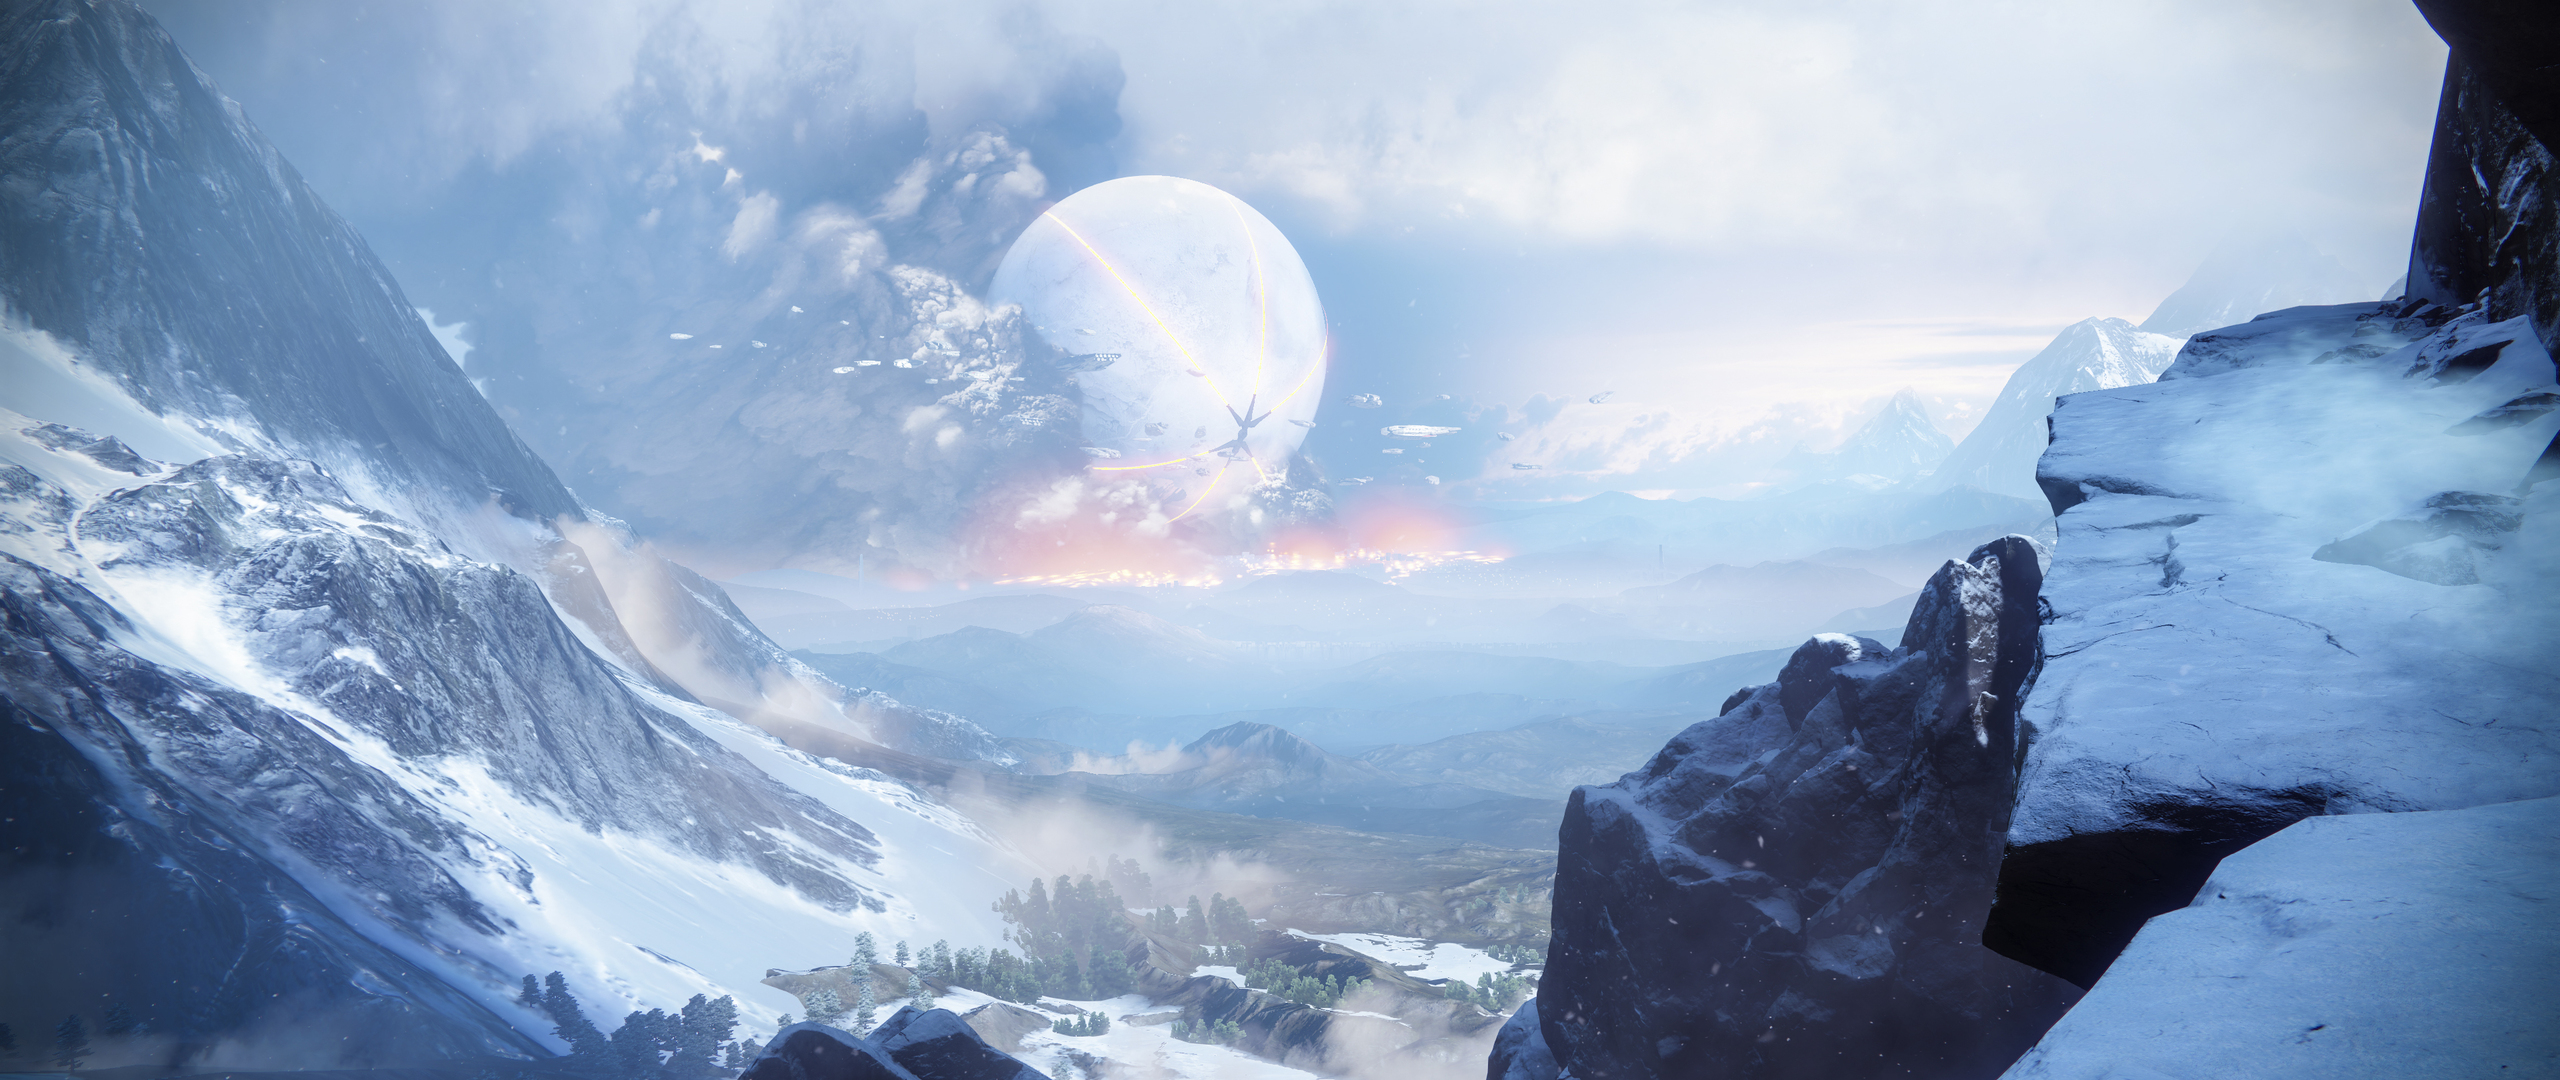 2560x1080 Destiny 2 Off The Cliff 4k 2560x1080 Resolution HD 4k Wallpapers, Images, Backgrounds ...